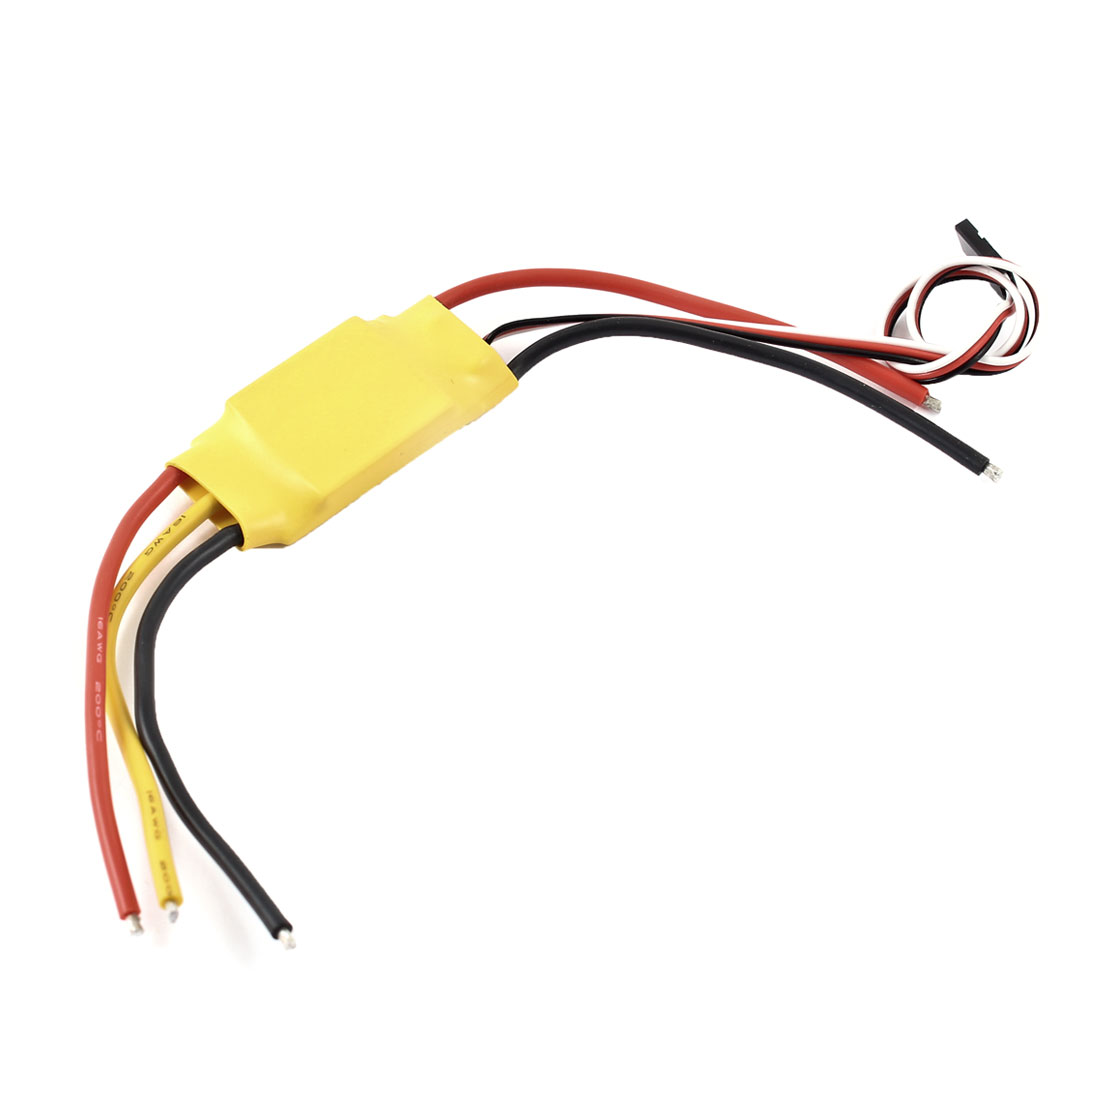 20A Brushless Speed Controller ESC for MultiCopter Quadcopter Rc Helicopter